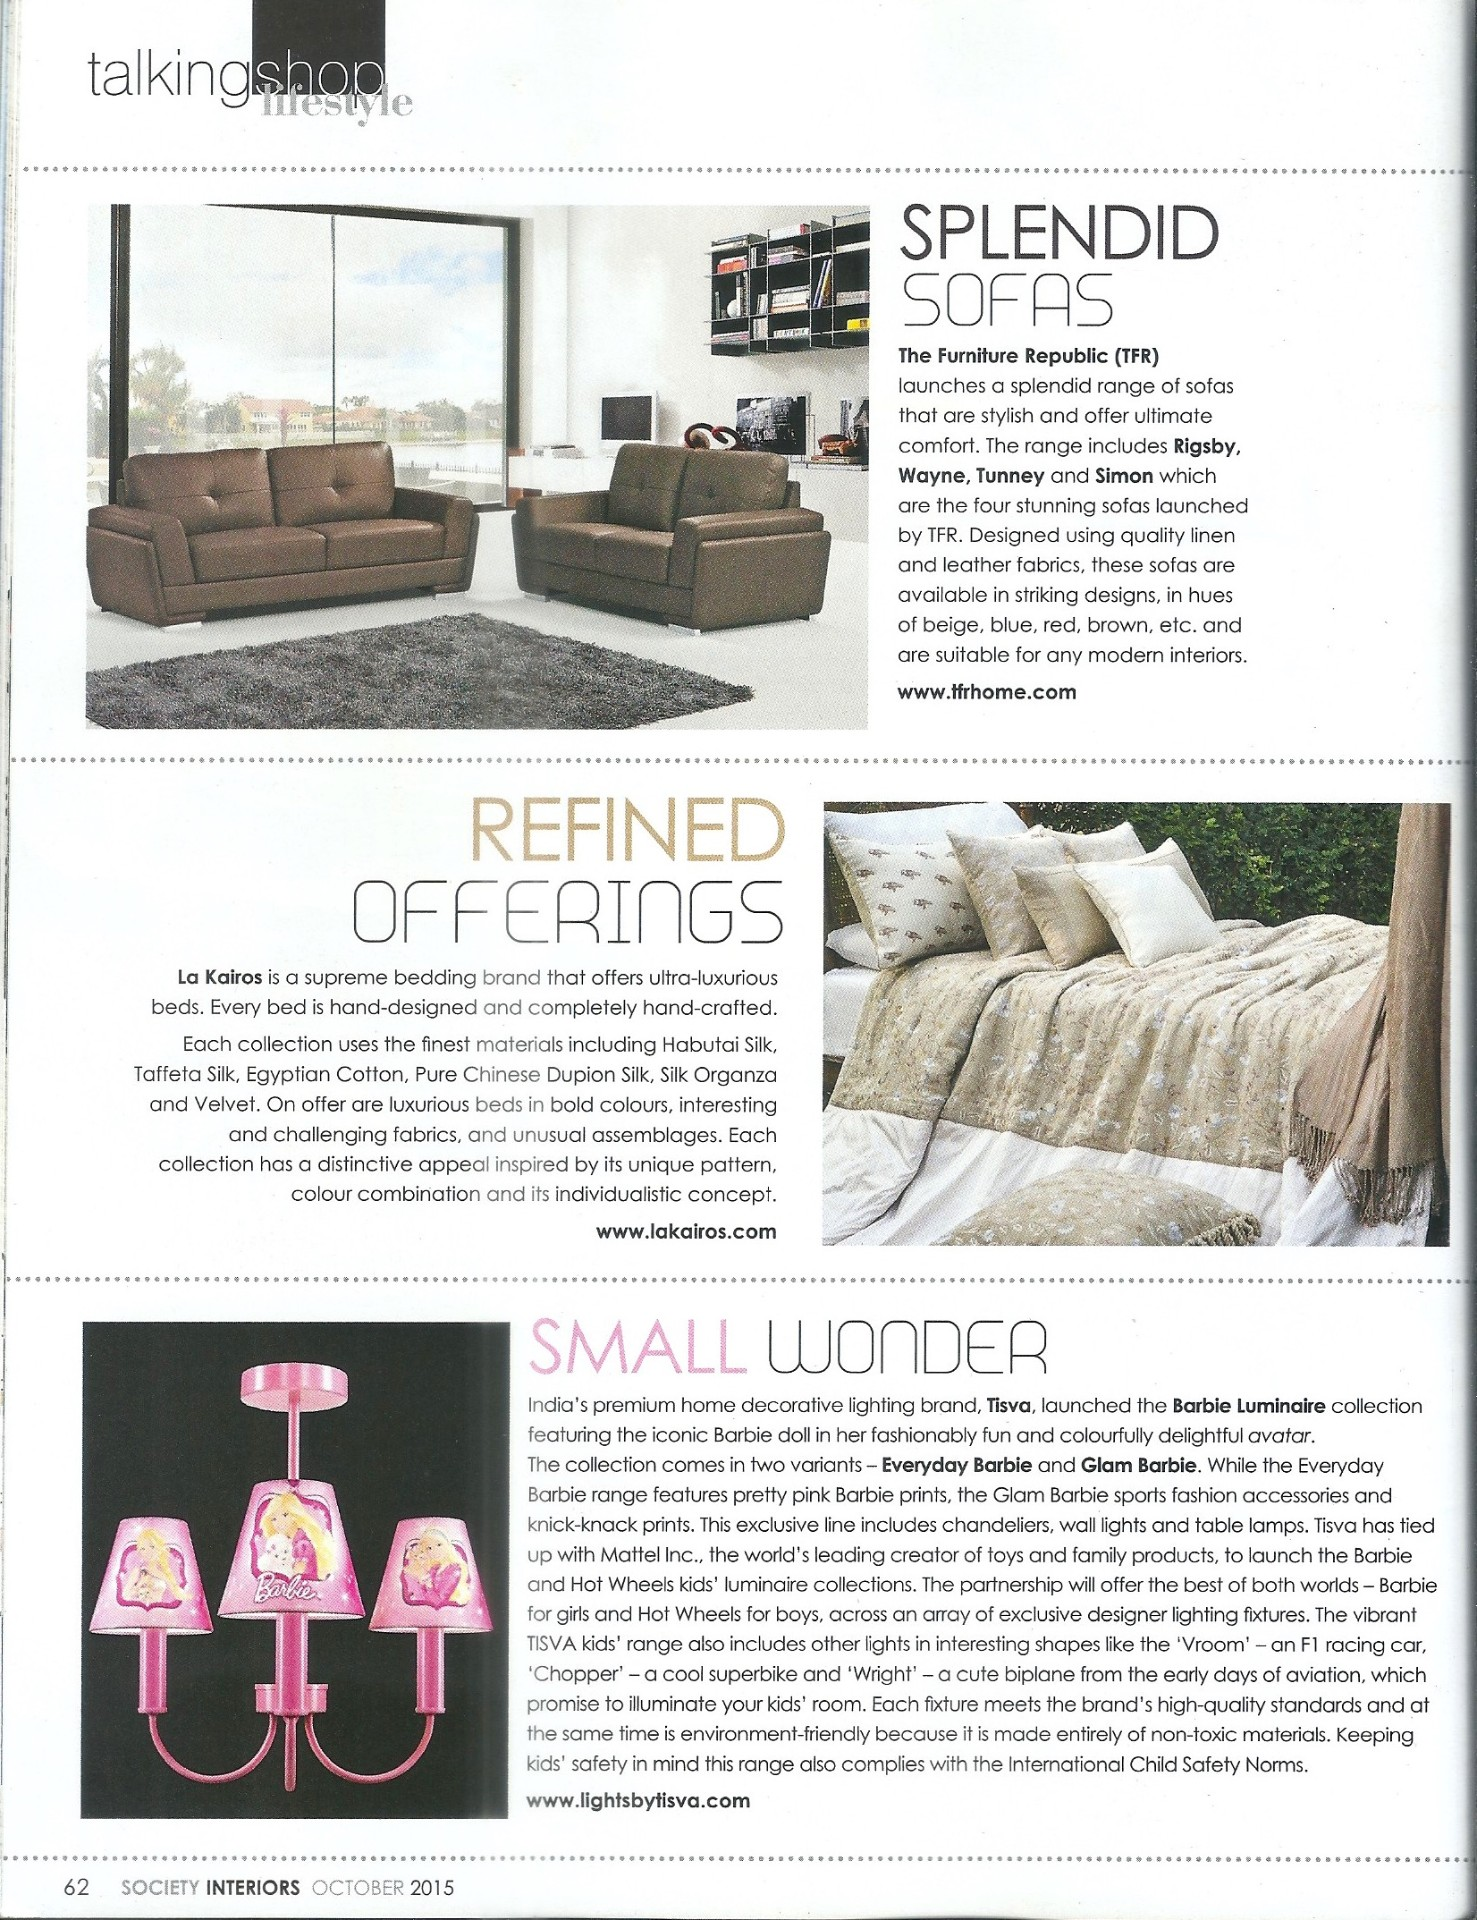 20151000 Society Interiors Oct2015 - 1 - HIGH